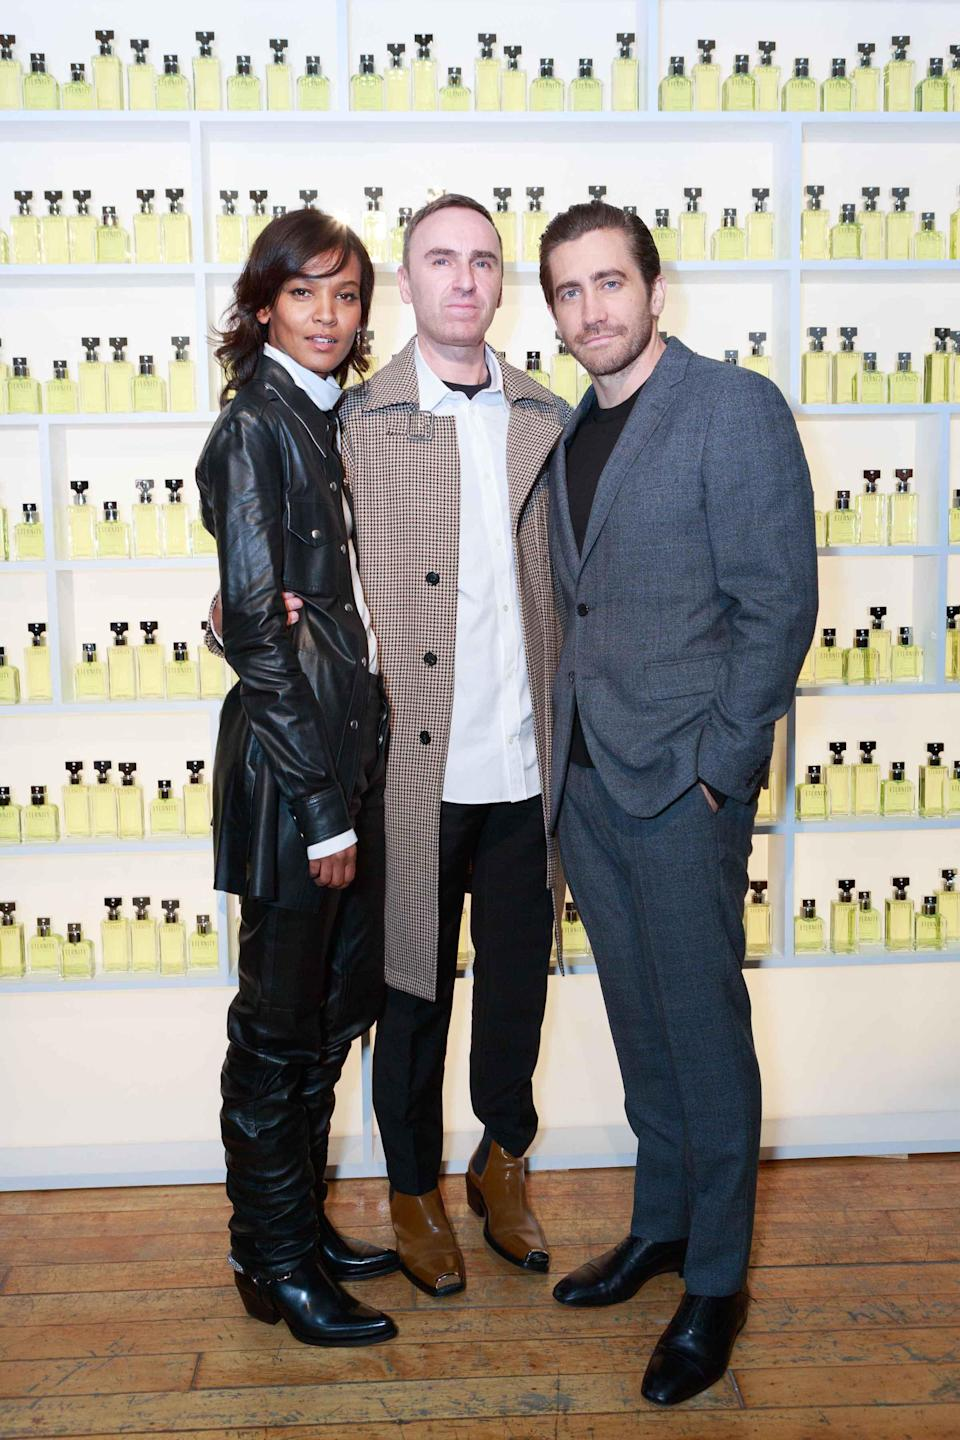 Model and philanthropist Liya Kebede, Calvin Klein chief creative officer Raf Simons, and Nine Stories production co-founder and actor Jake Gyllenhaal at the Calvin Klein Eternity fragrance launch event in New York. (Photo: Courtesy of Coty)